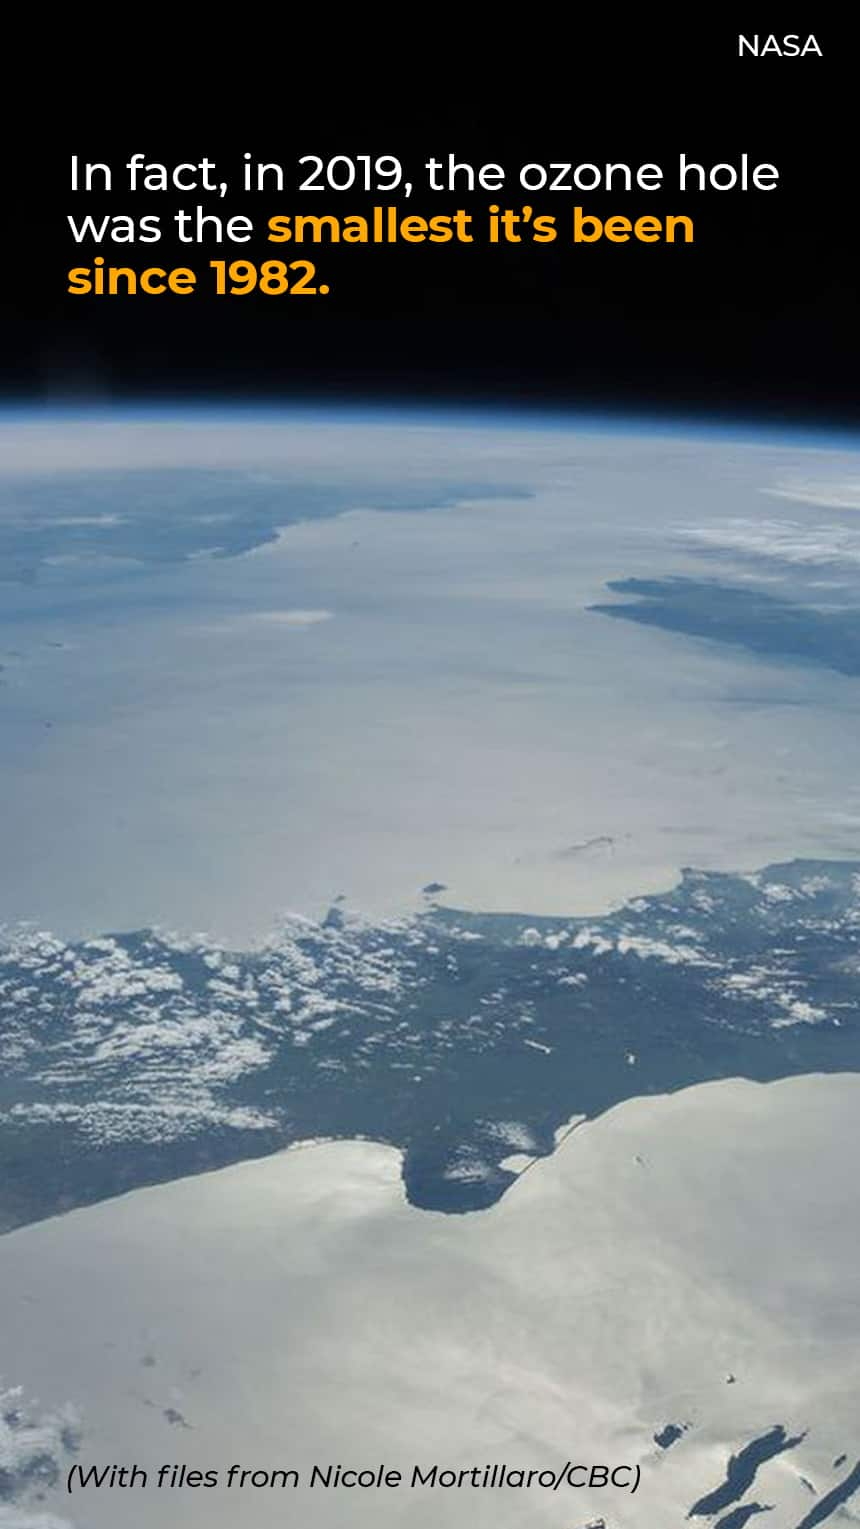 TEXT: In fact, in 2019, the ozone hole was the smallest it's been since 1982. (With files from Nicole Mortillaro/CBC) IMAGE: The Earth seen from space.